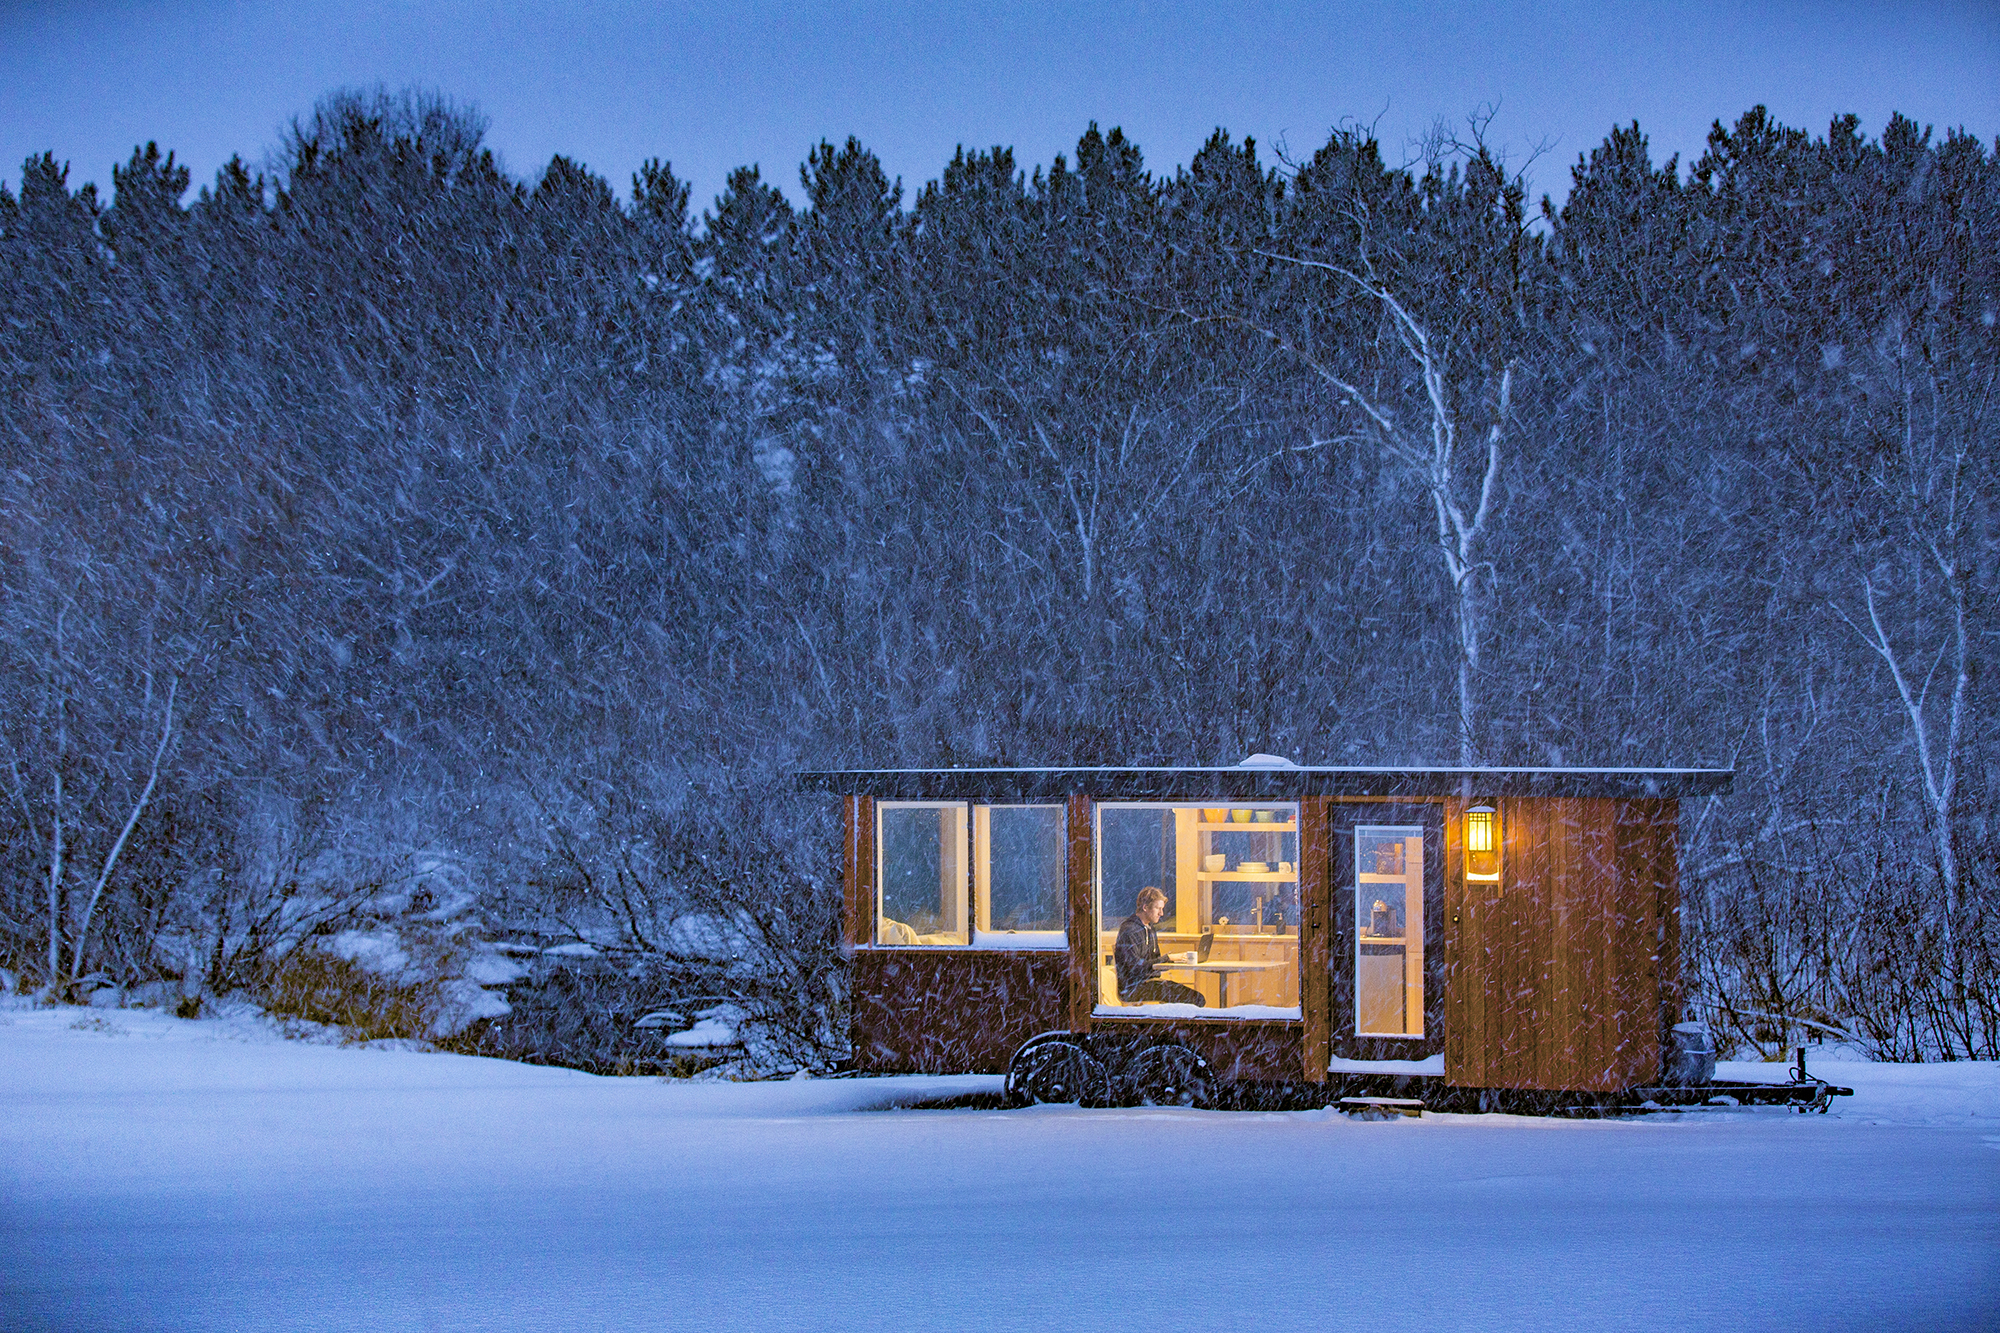 If You're Ready to Give Up on Everything and Move to the Country Forever, This is the Tiny House for You